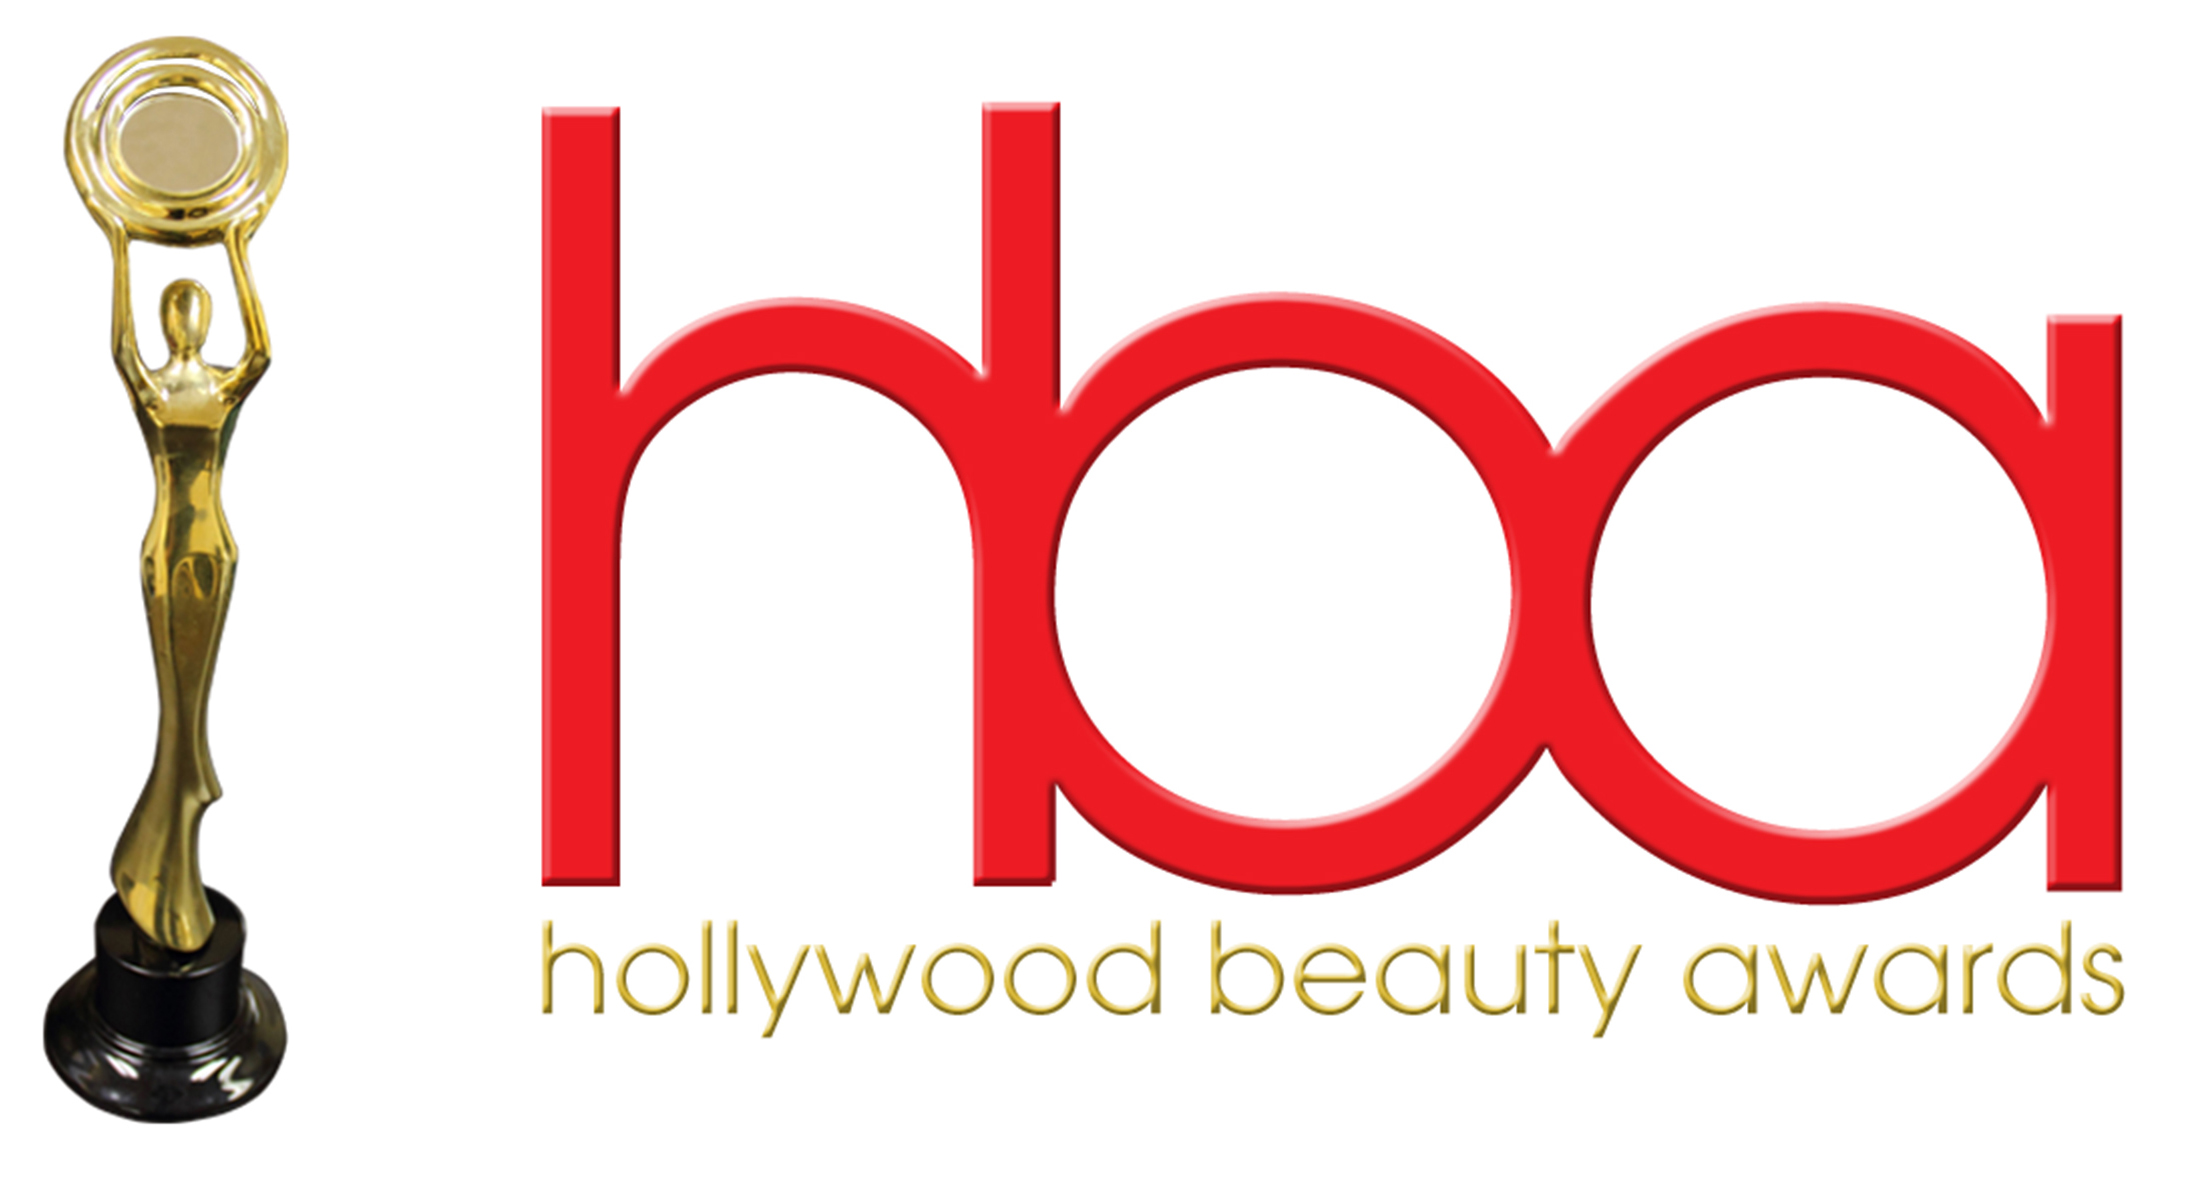 2018 Hollywood Beauty Awards, honorees and nominees